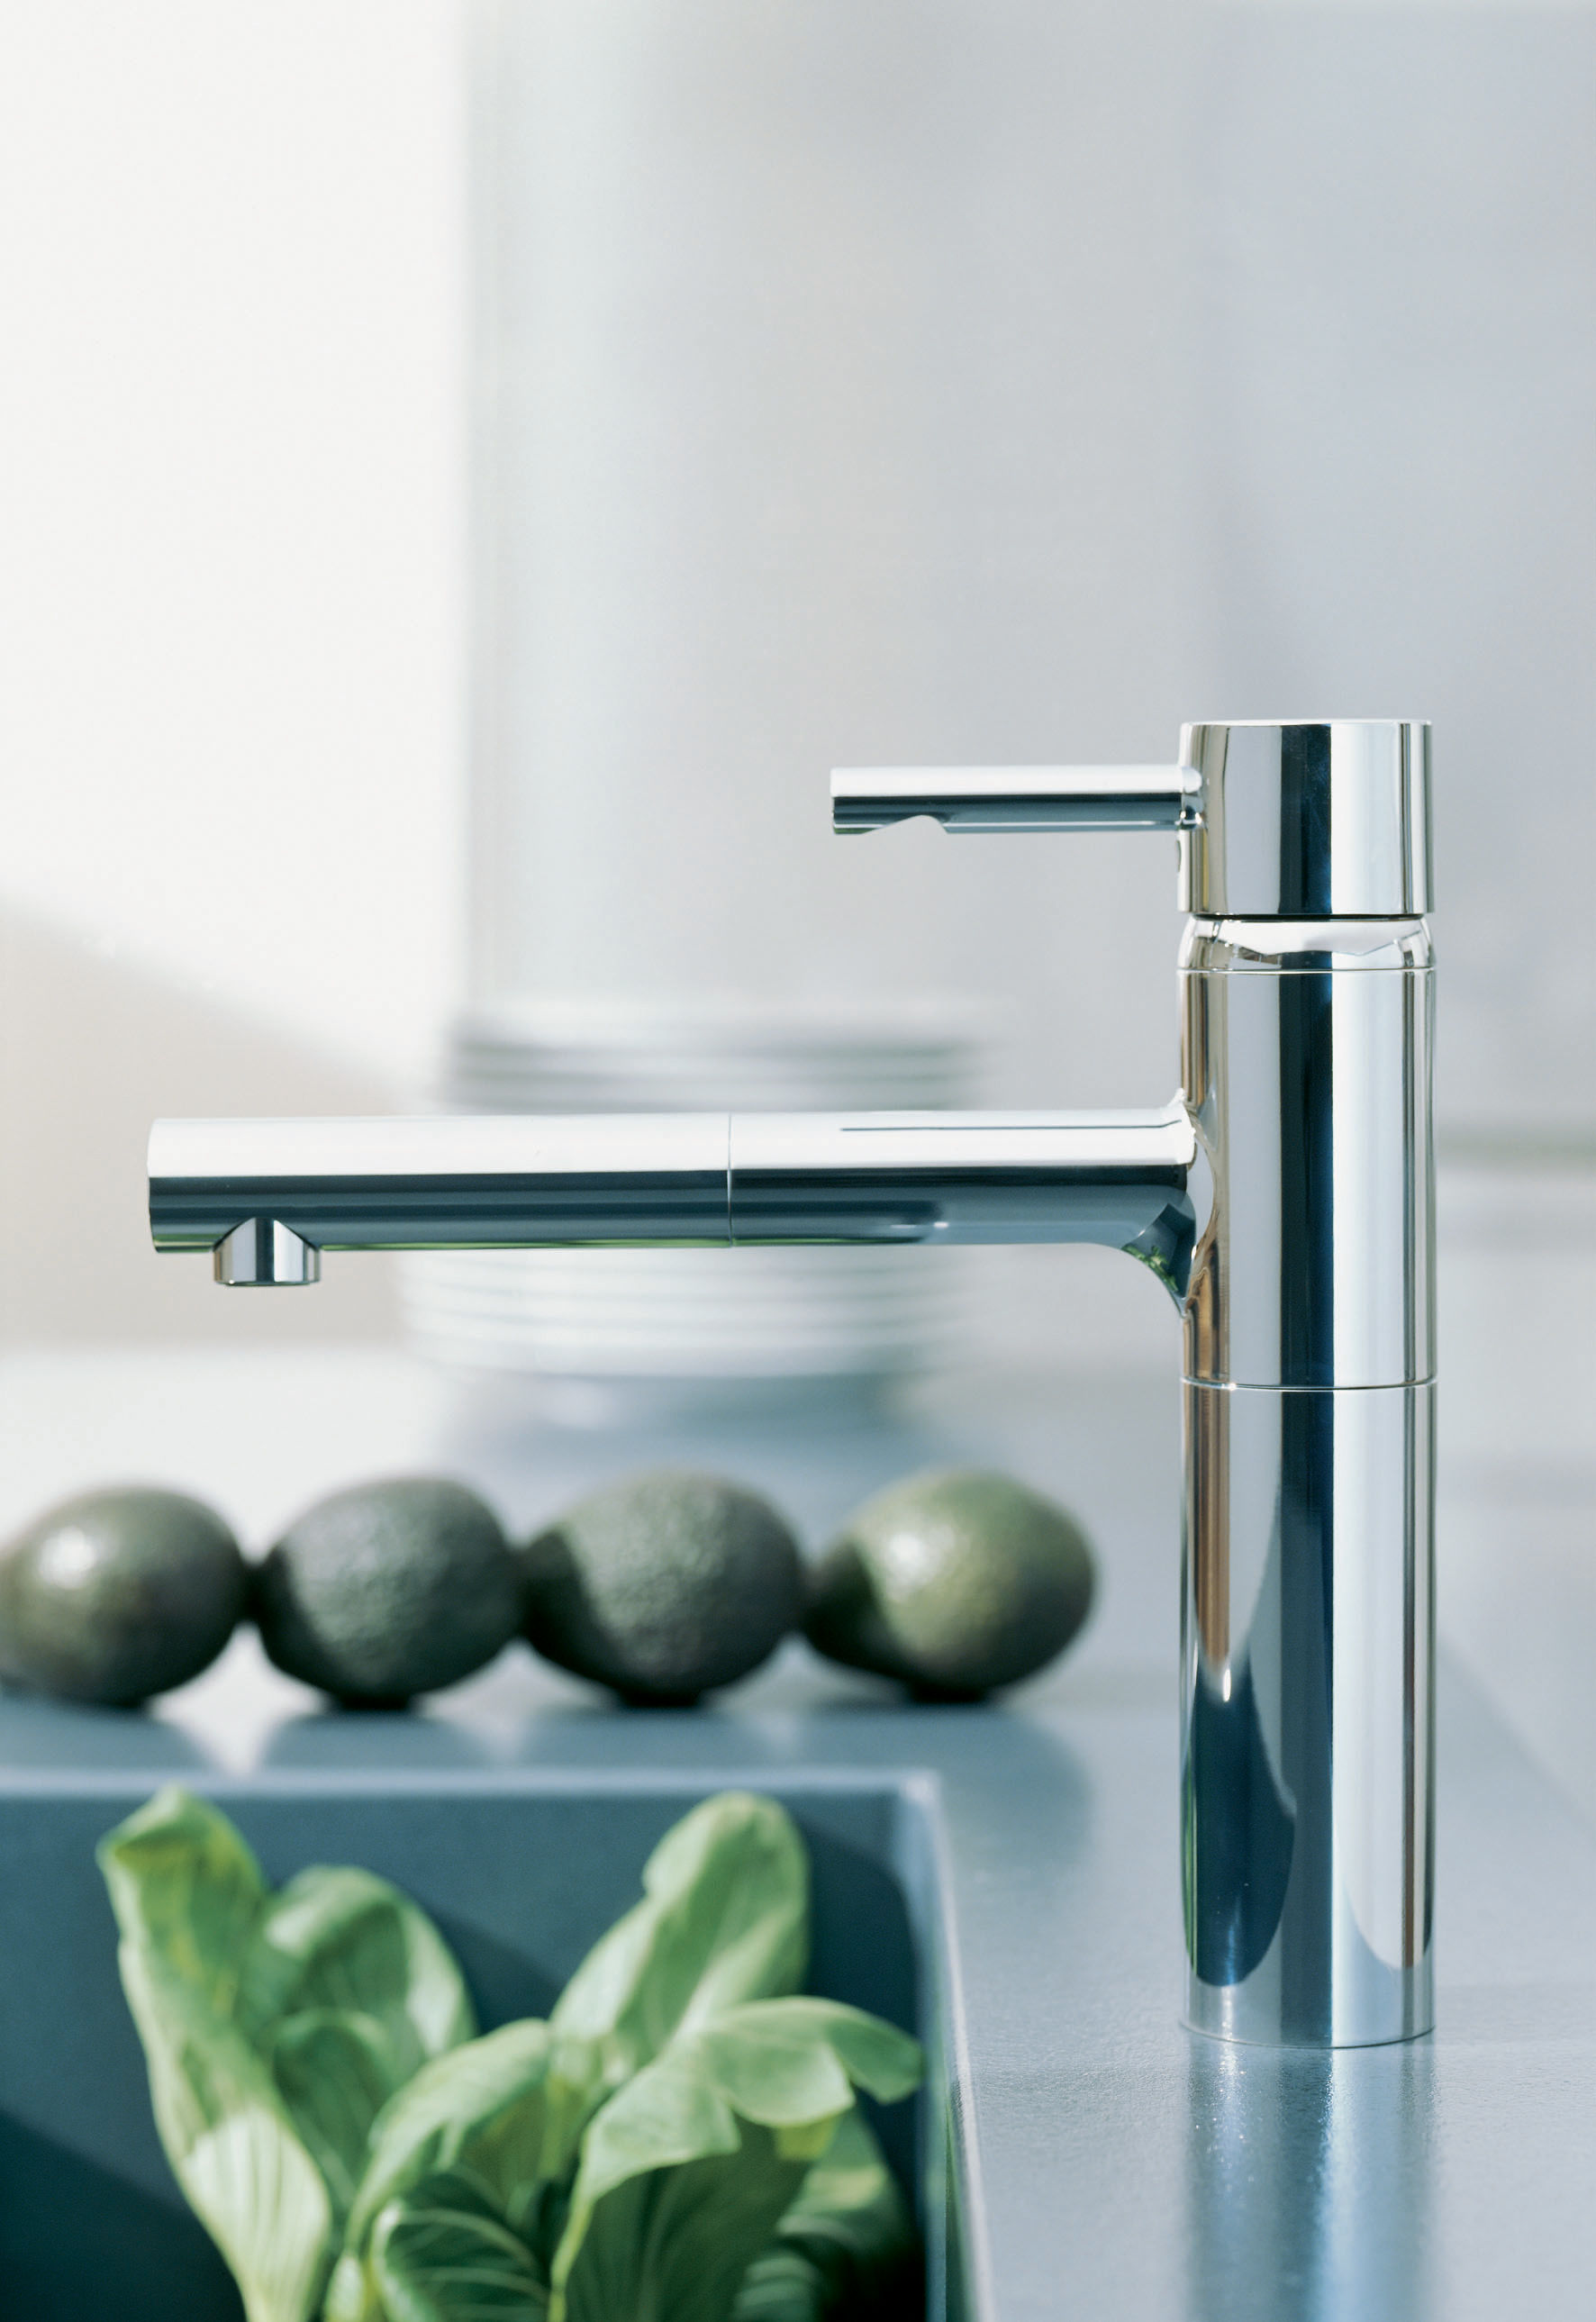 Grohe 32170000 Starlight Chrome Essence Pull-Out Kitchen Faucet ...